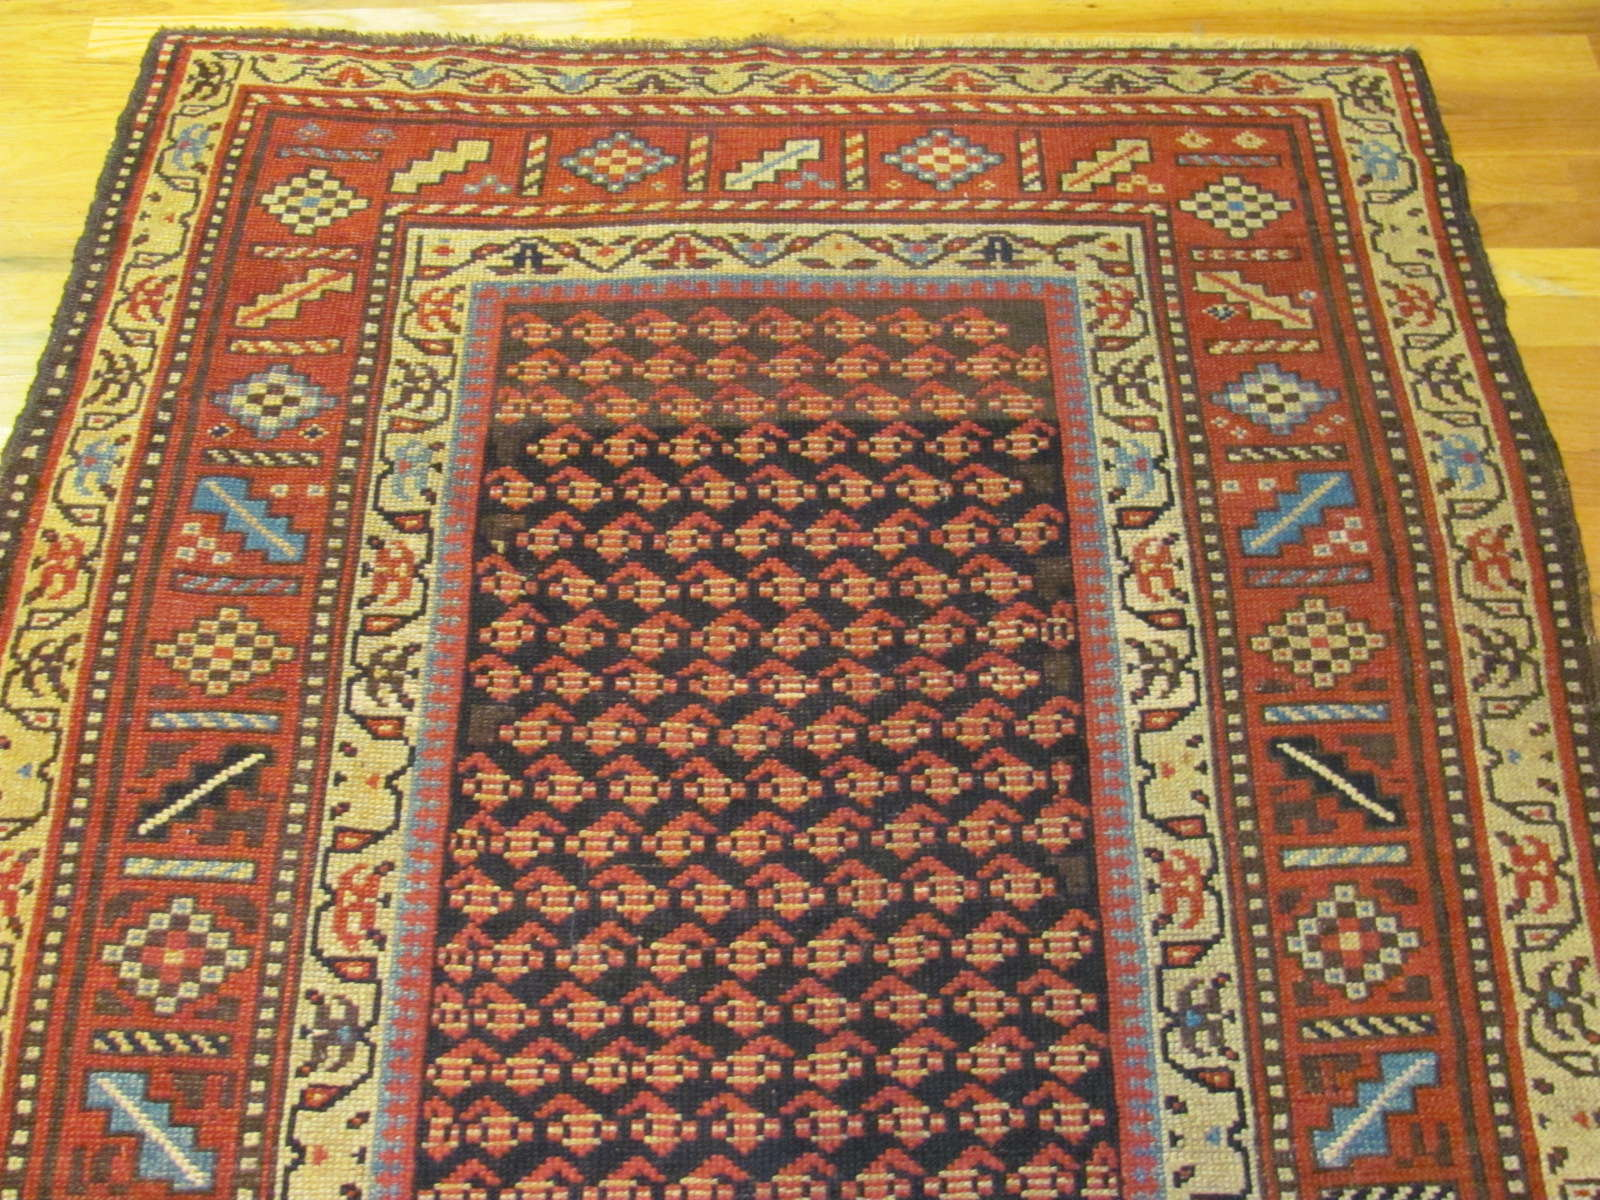 24542 antique northwest persian kurd rug 4,4x7,5 -1